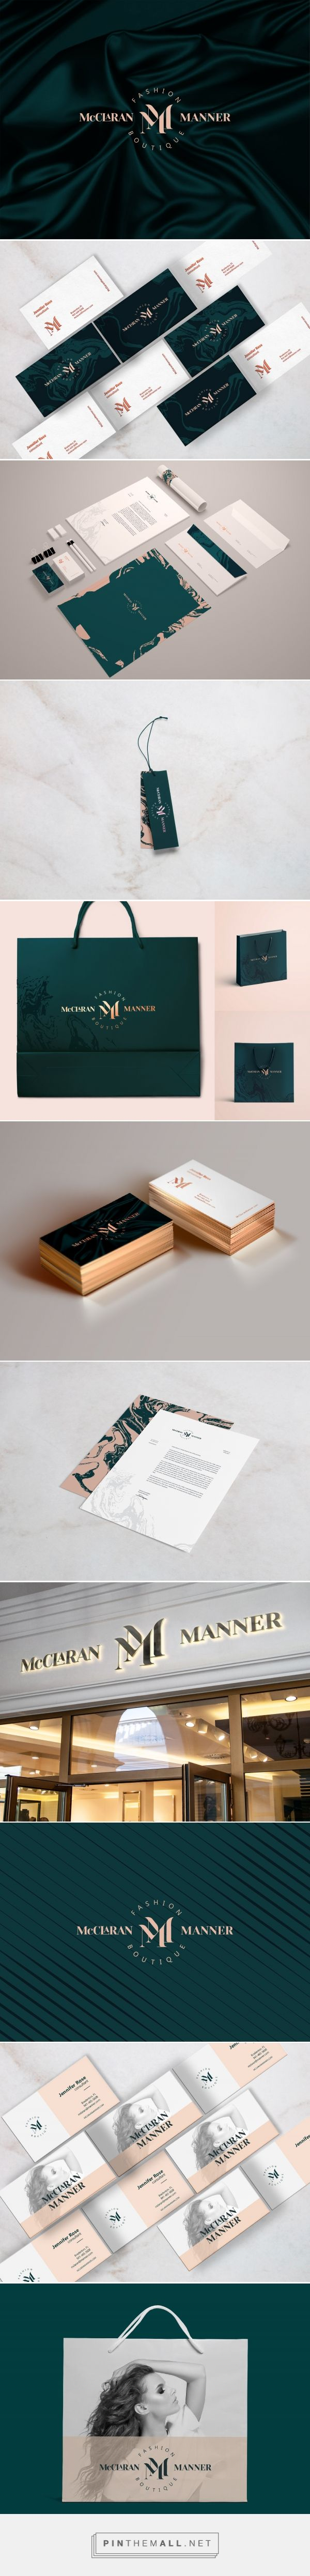 McClaran Manner Fashion Boutique Branding by Shane Wilson | Fivestar Branding Agency – Design and Branding Agency & Curated Inspiration Gallery